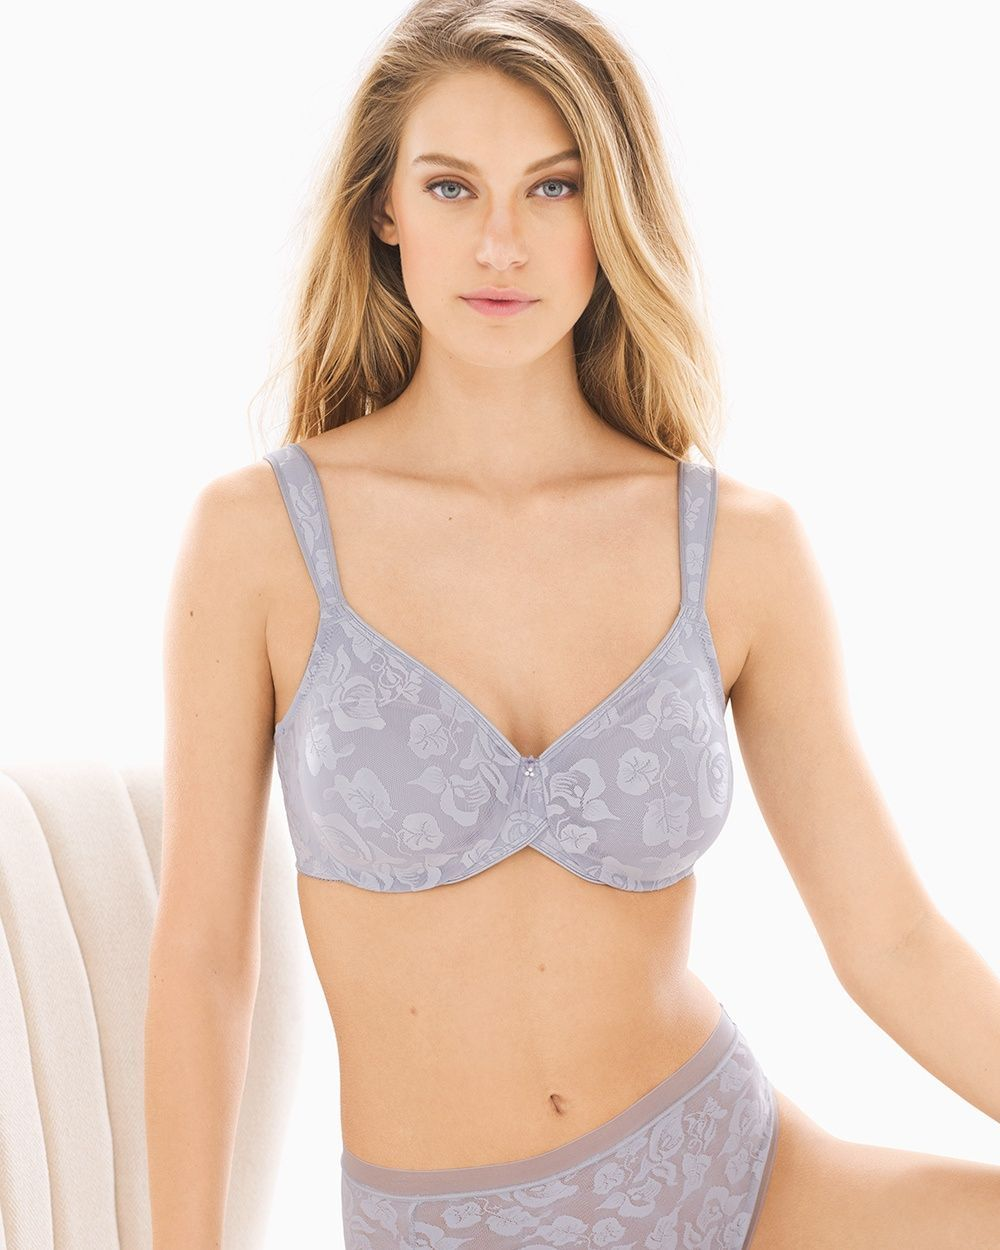 f2c0d7d038aa8 Soma Wacoal Awareness Seamless Unlined Underwire Bra